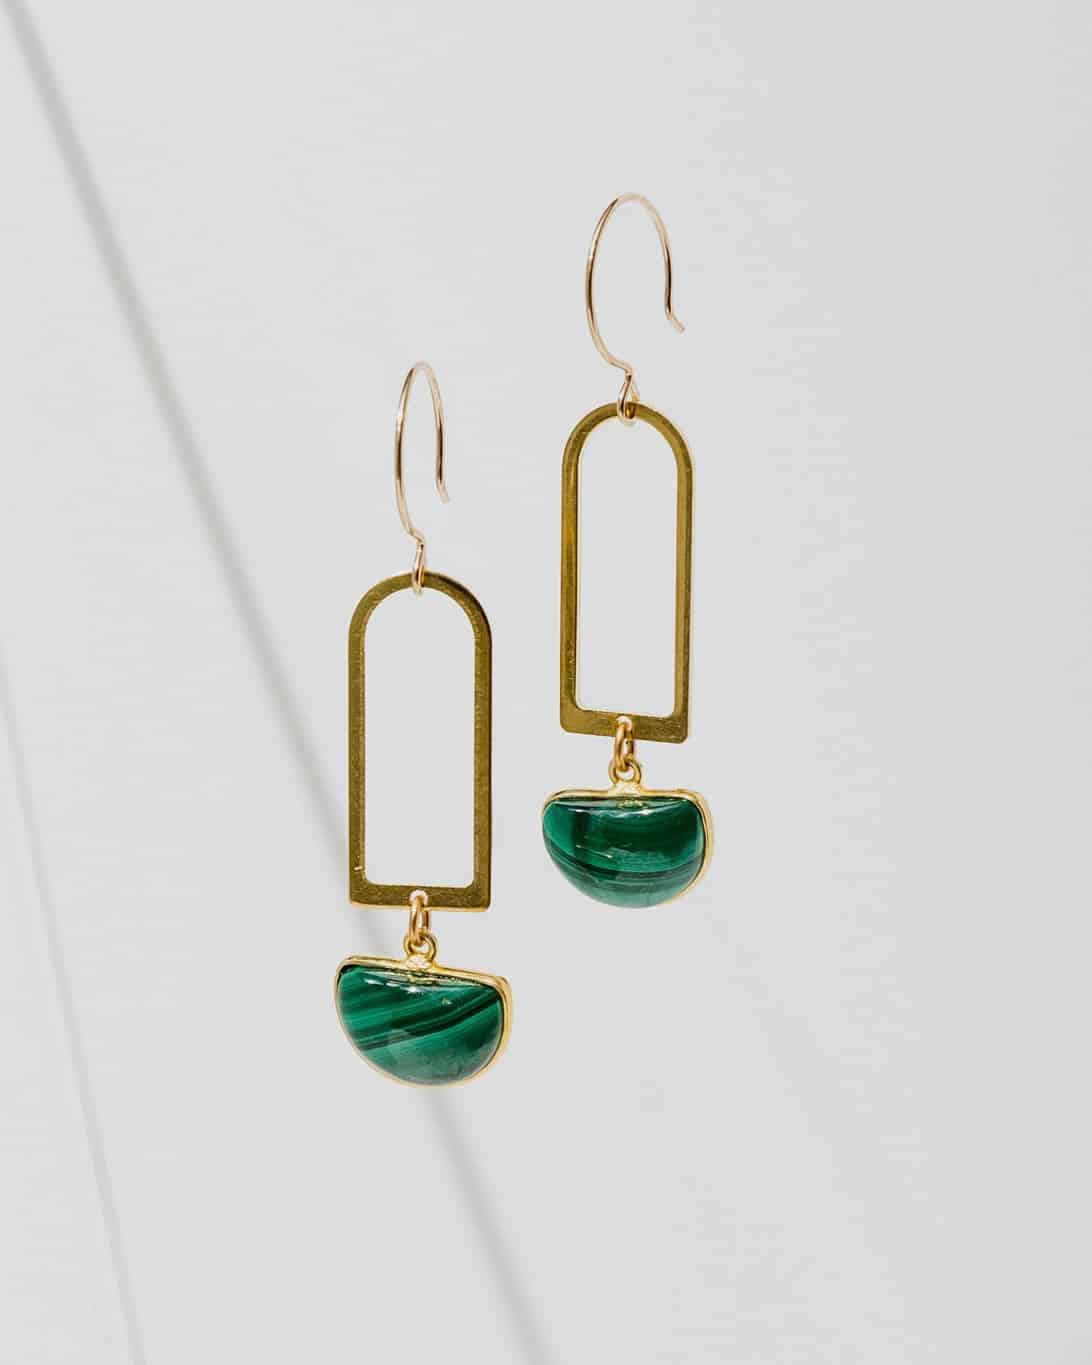 brass pendant earrings with green stones